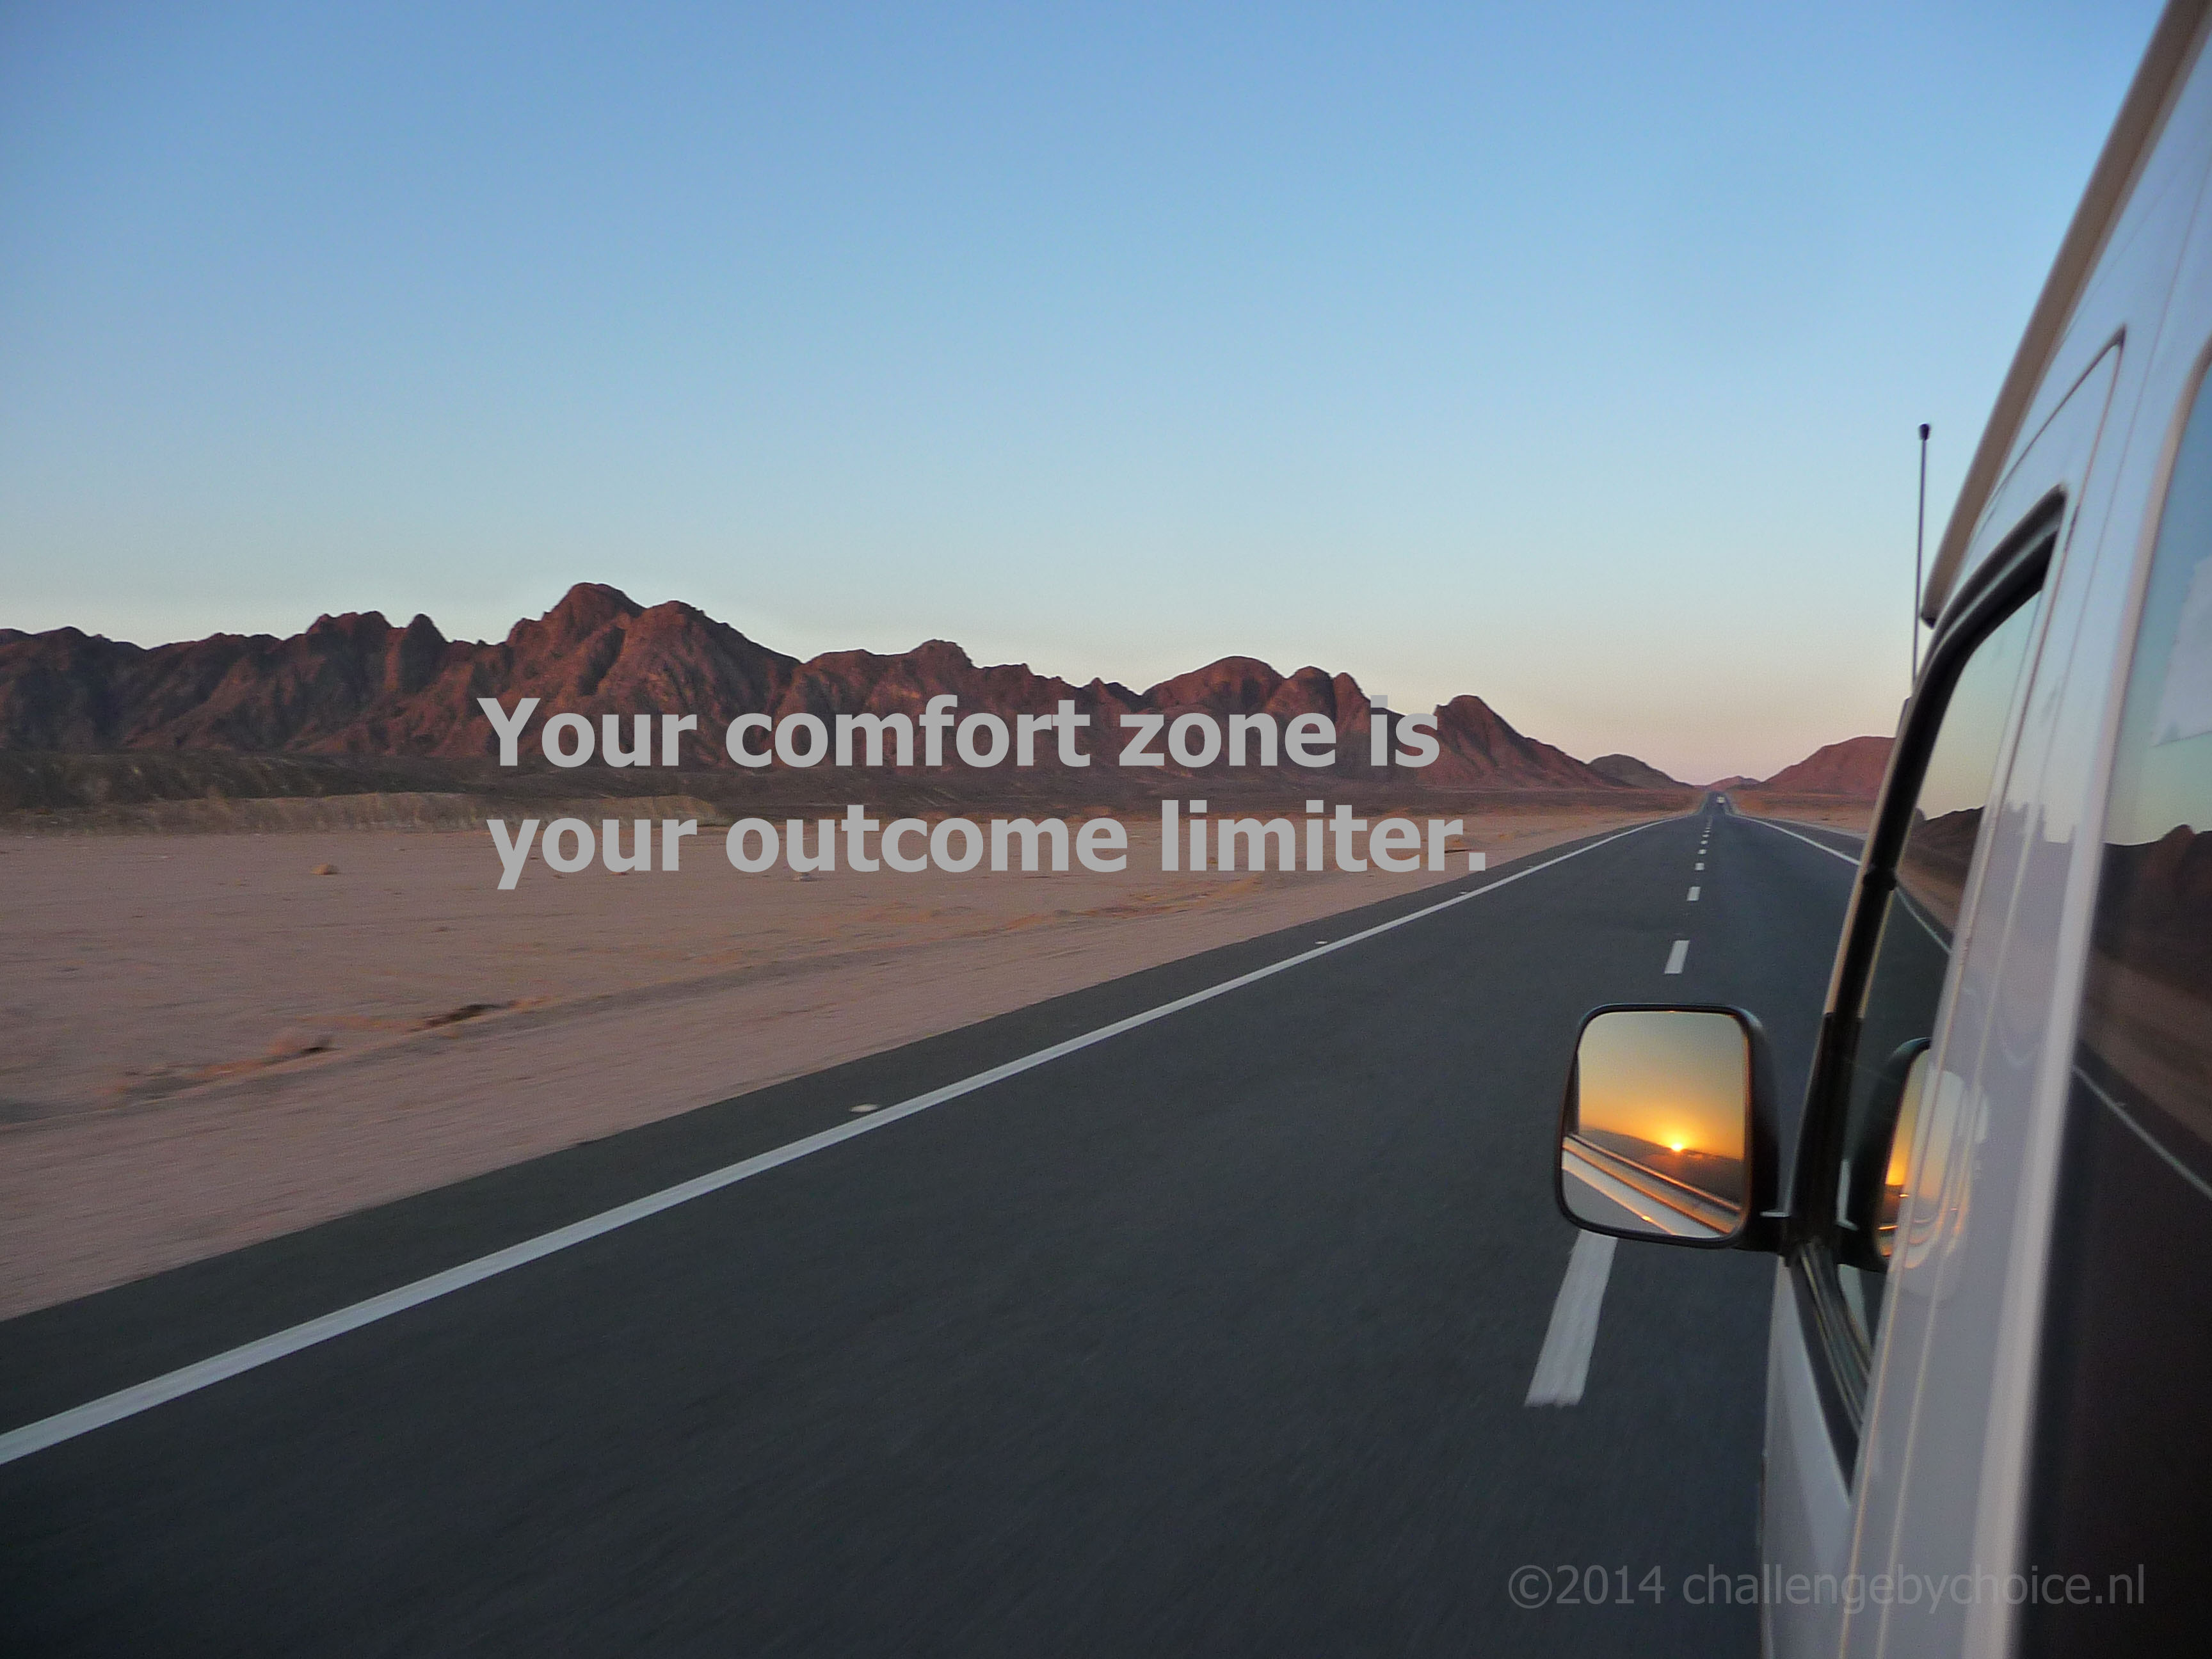 Your comfort zone is your outcome limiter